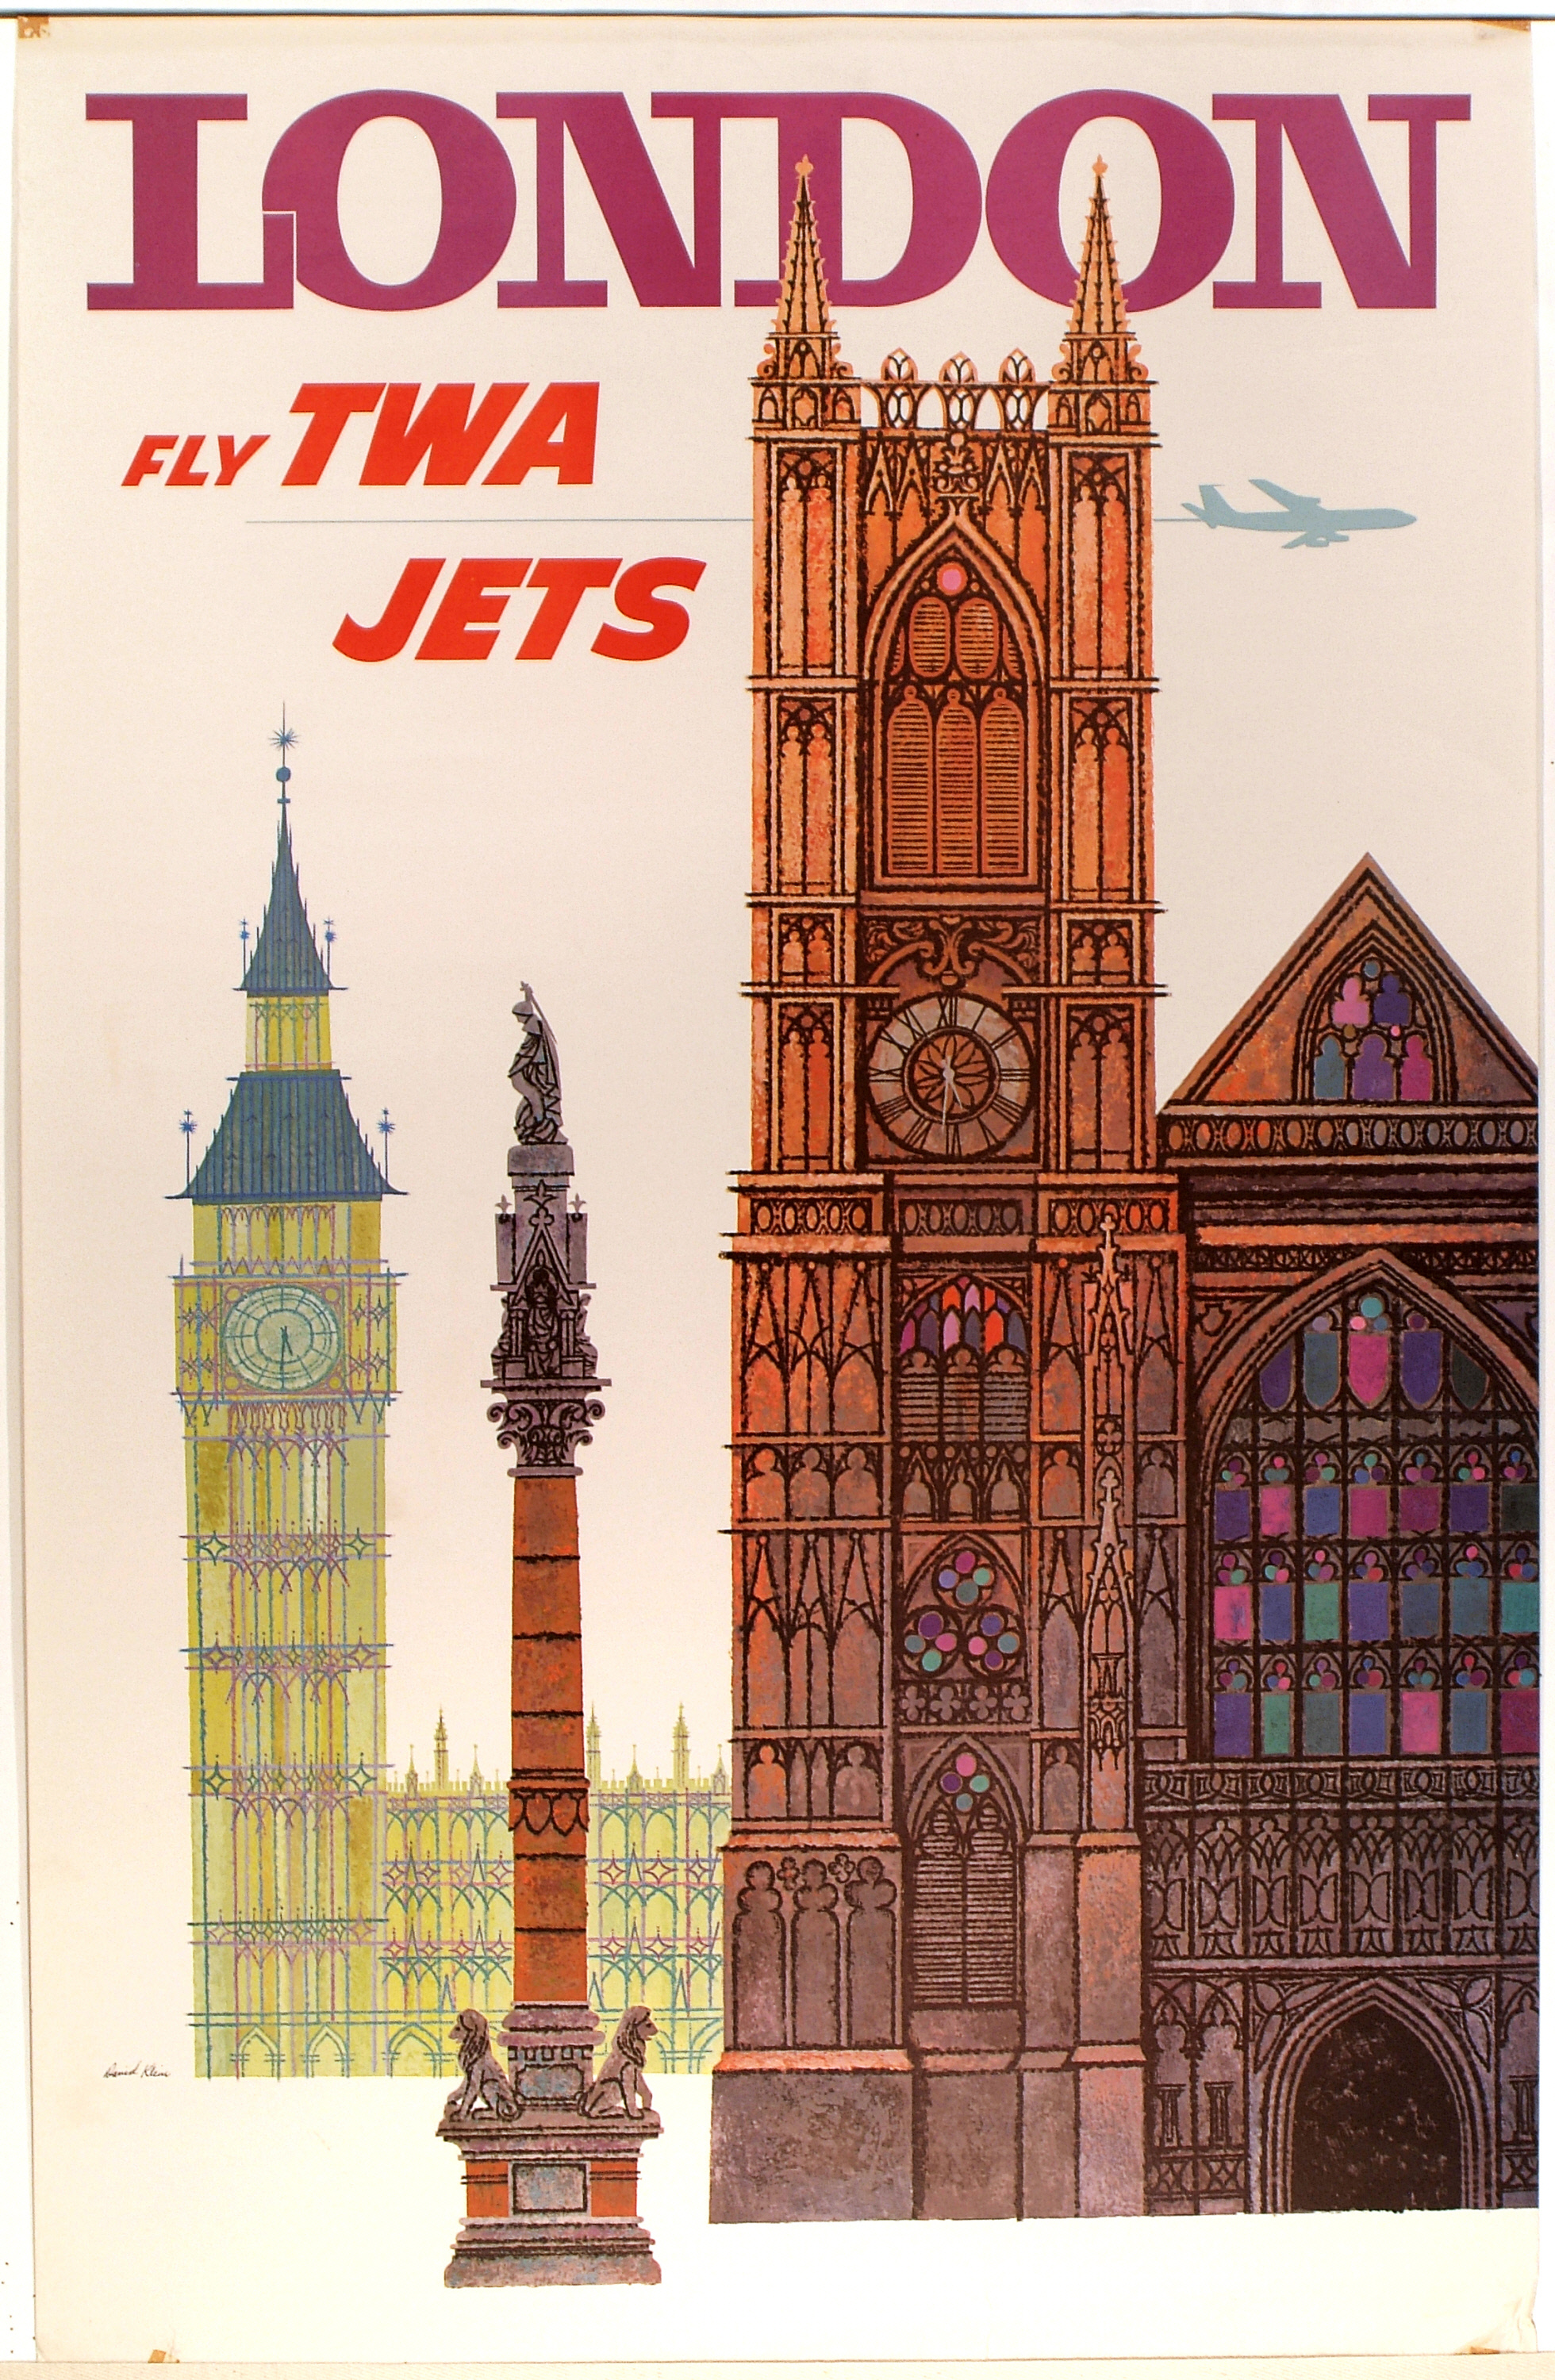 A poster that reads London with landmarks on it.